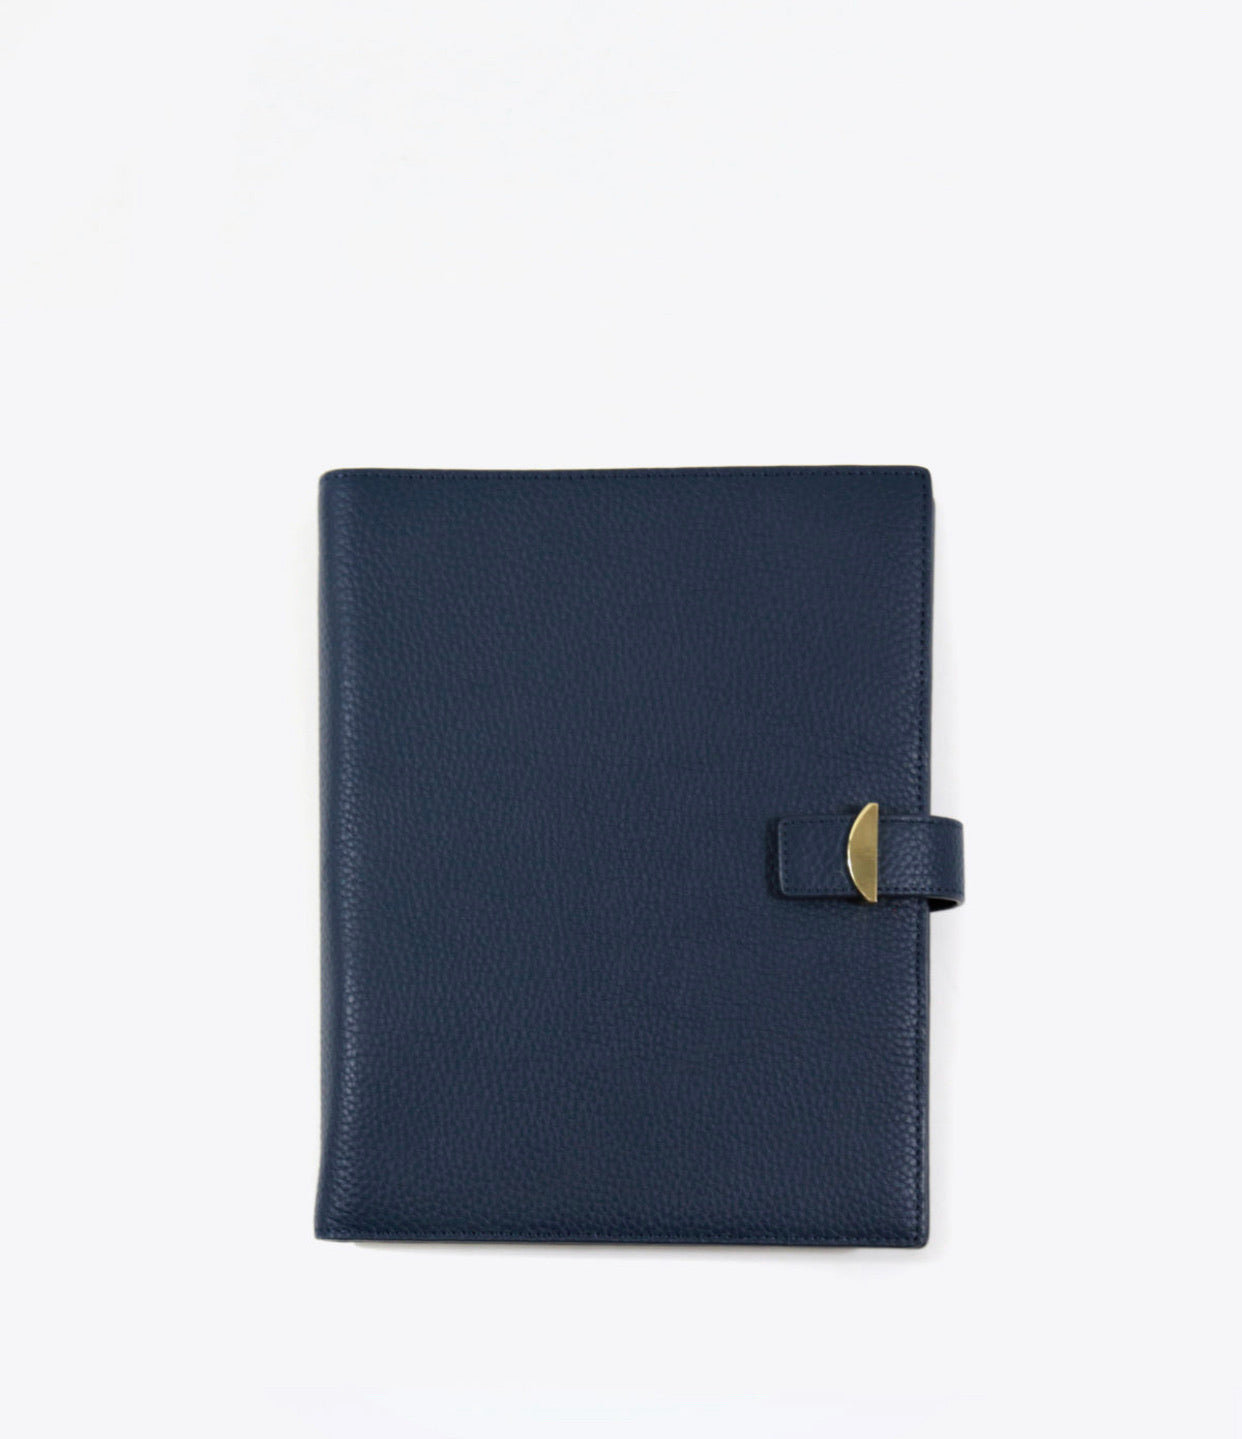 Neely & Chloe - No. 39 The Passport Cover Saffiano - Navy